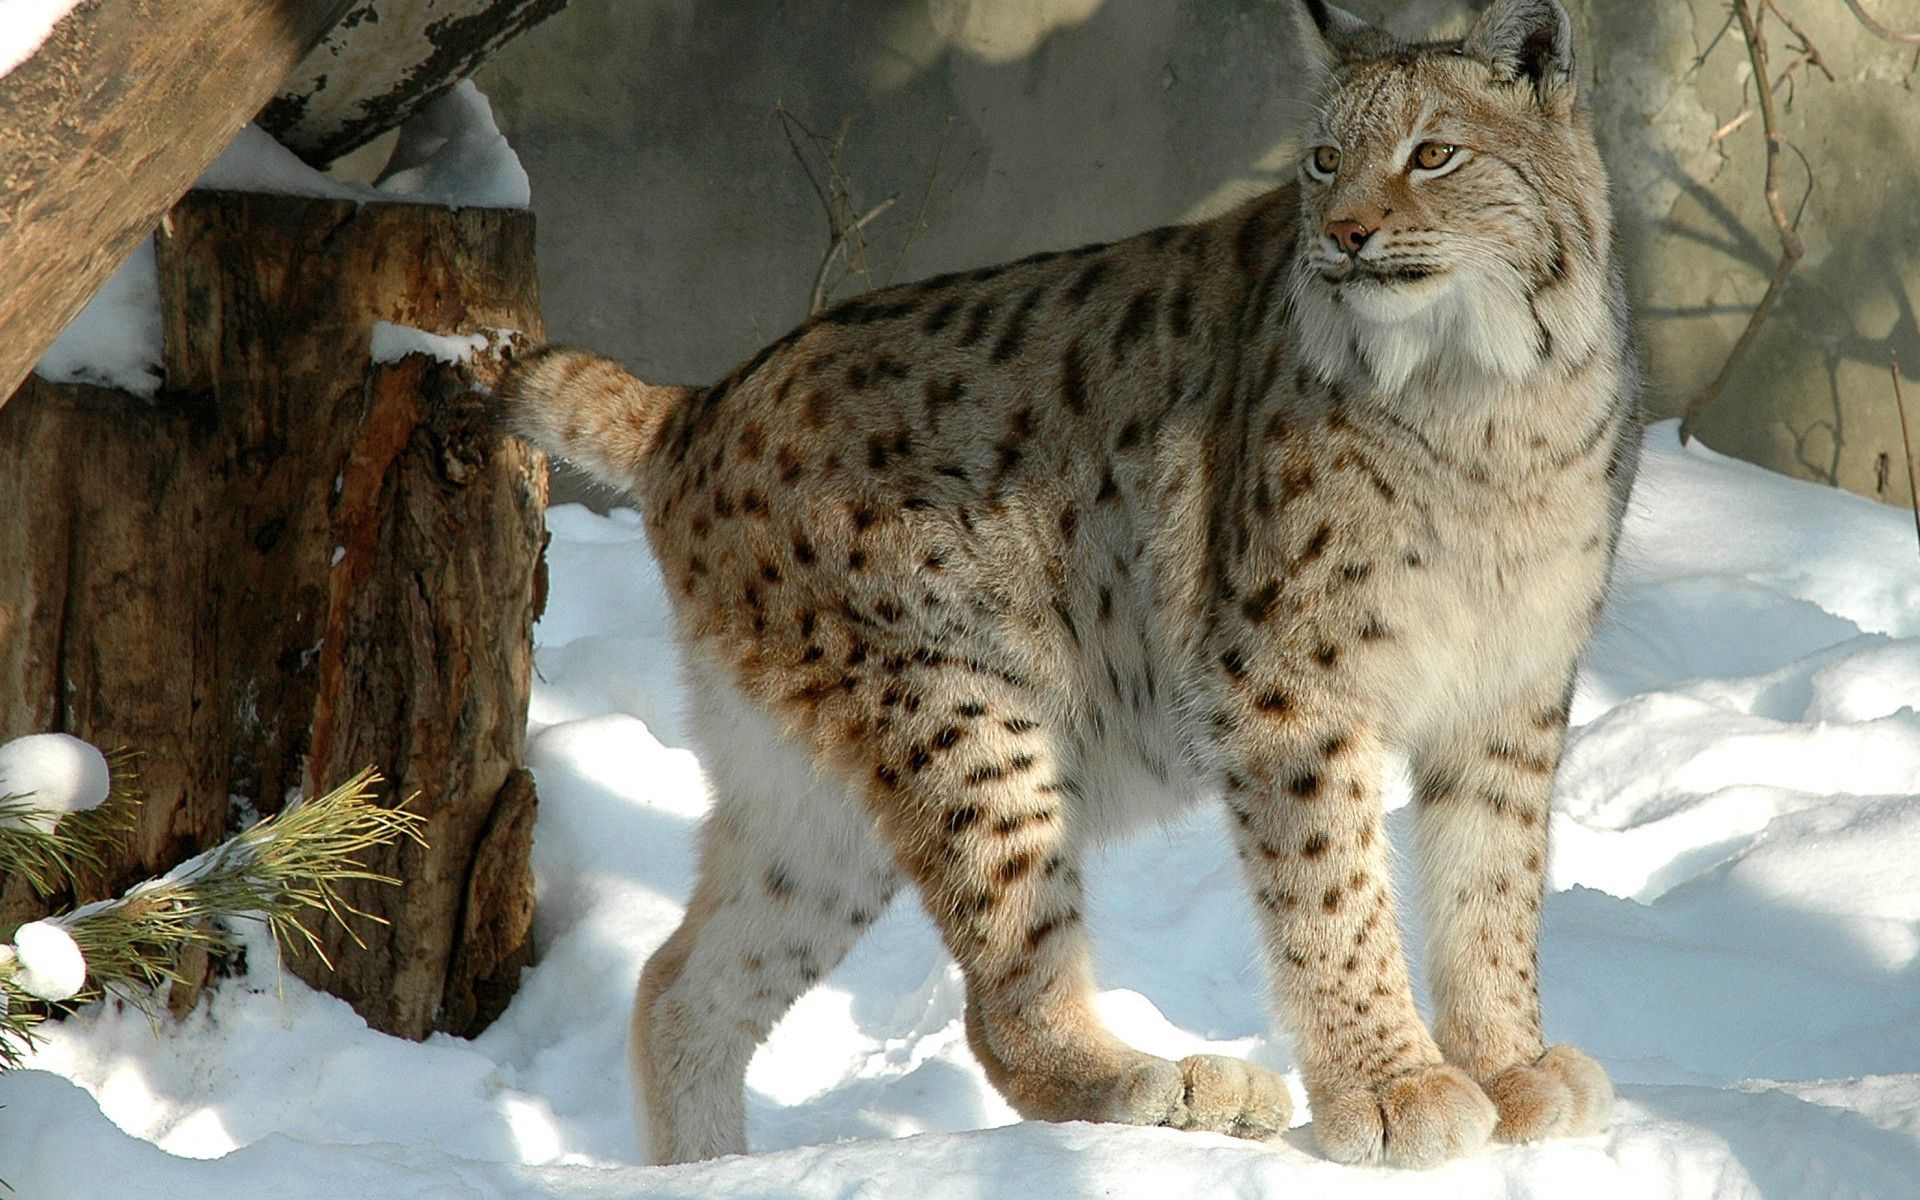 112982 download wallpaper Animals, Winter, Snow, Iris, Forest screensavers and pictures for free